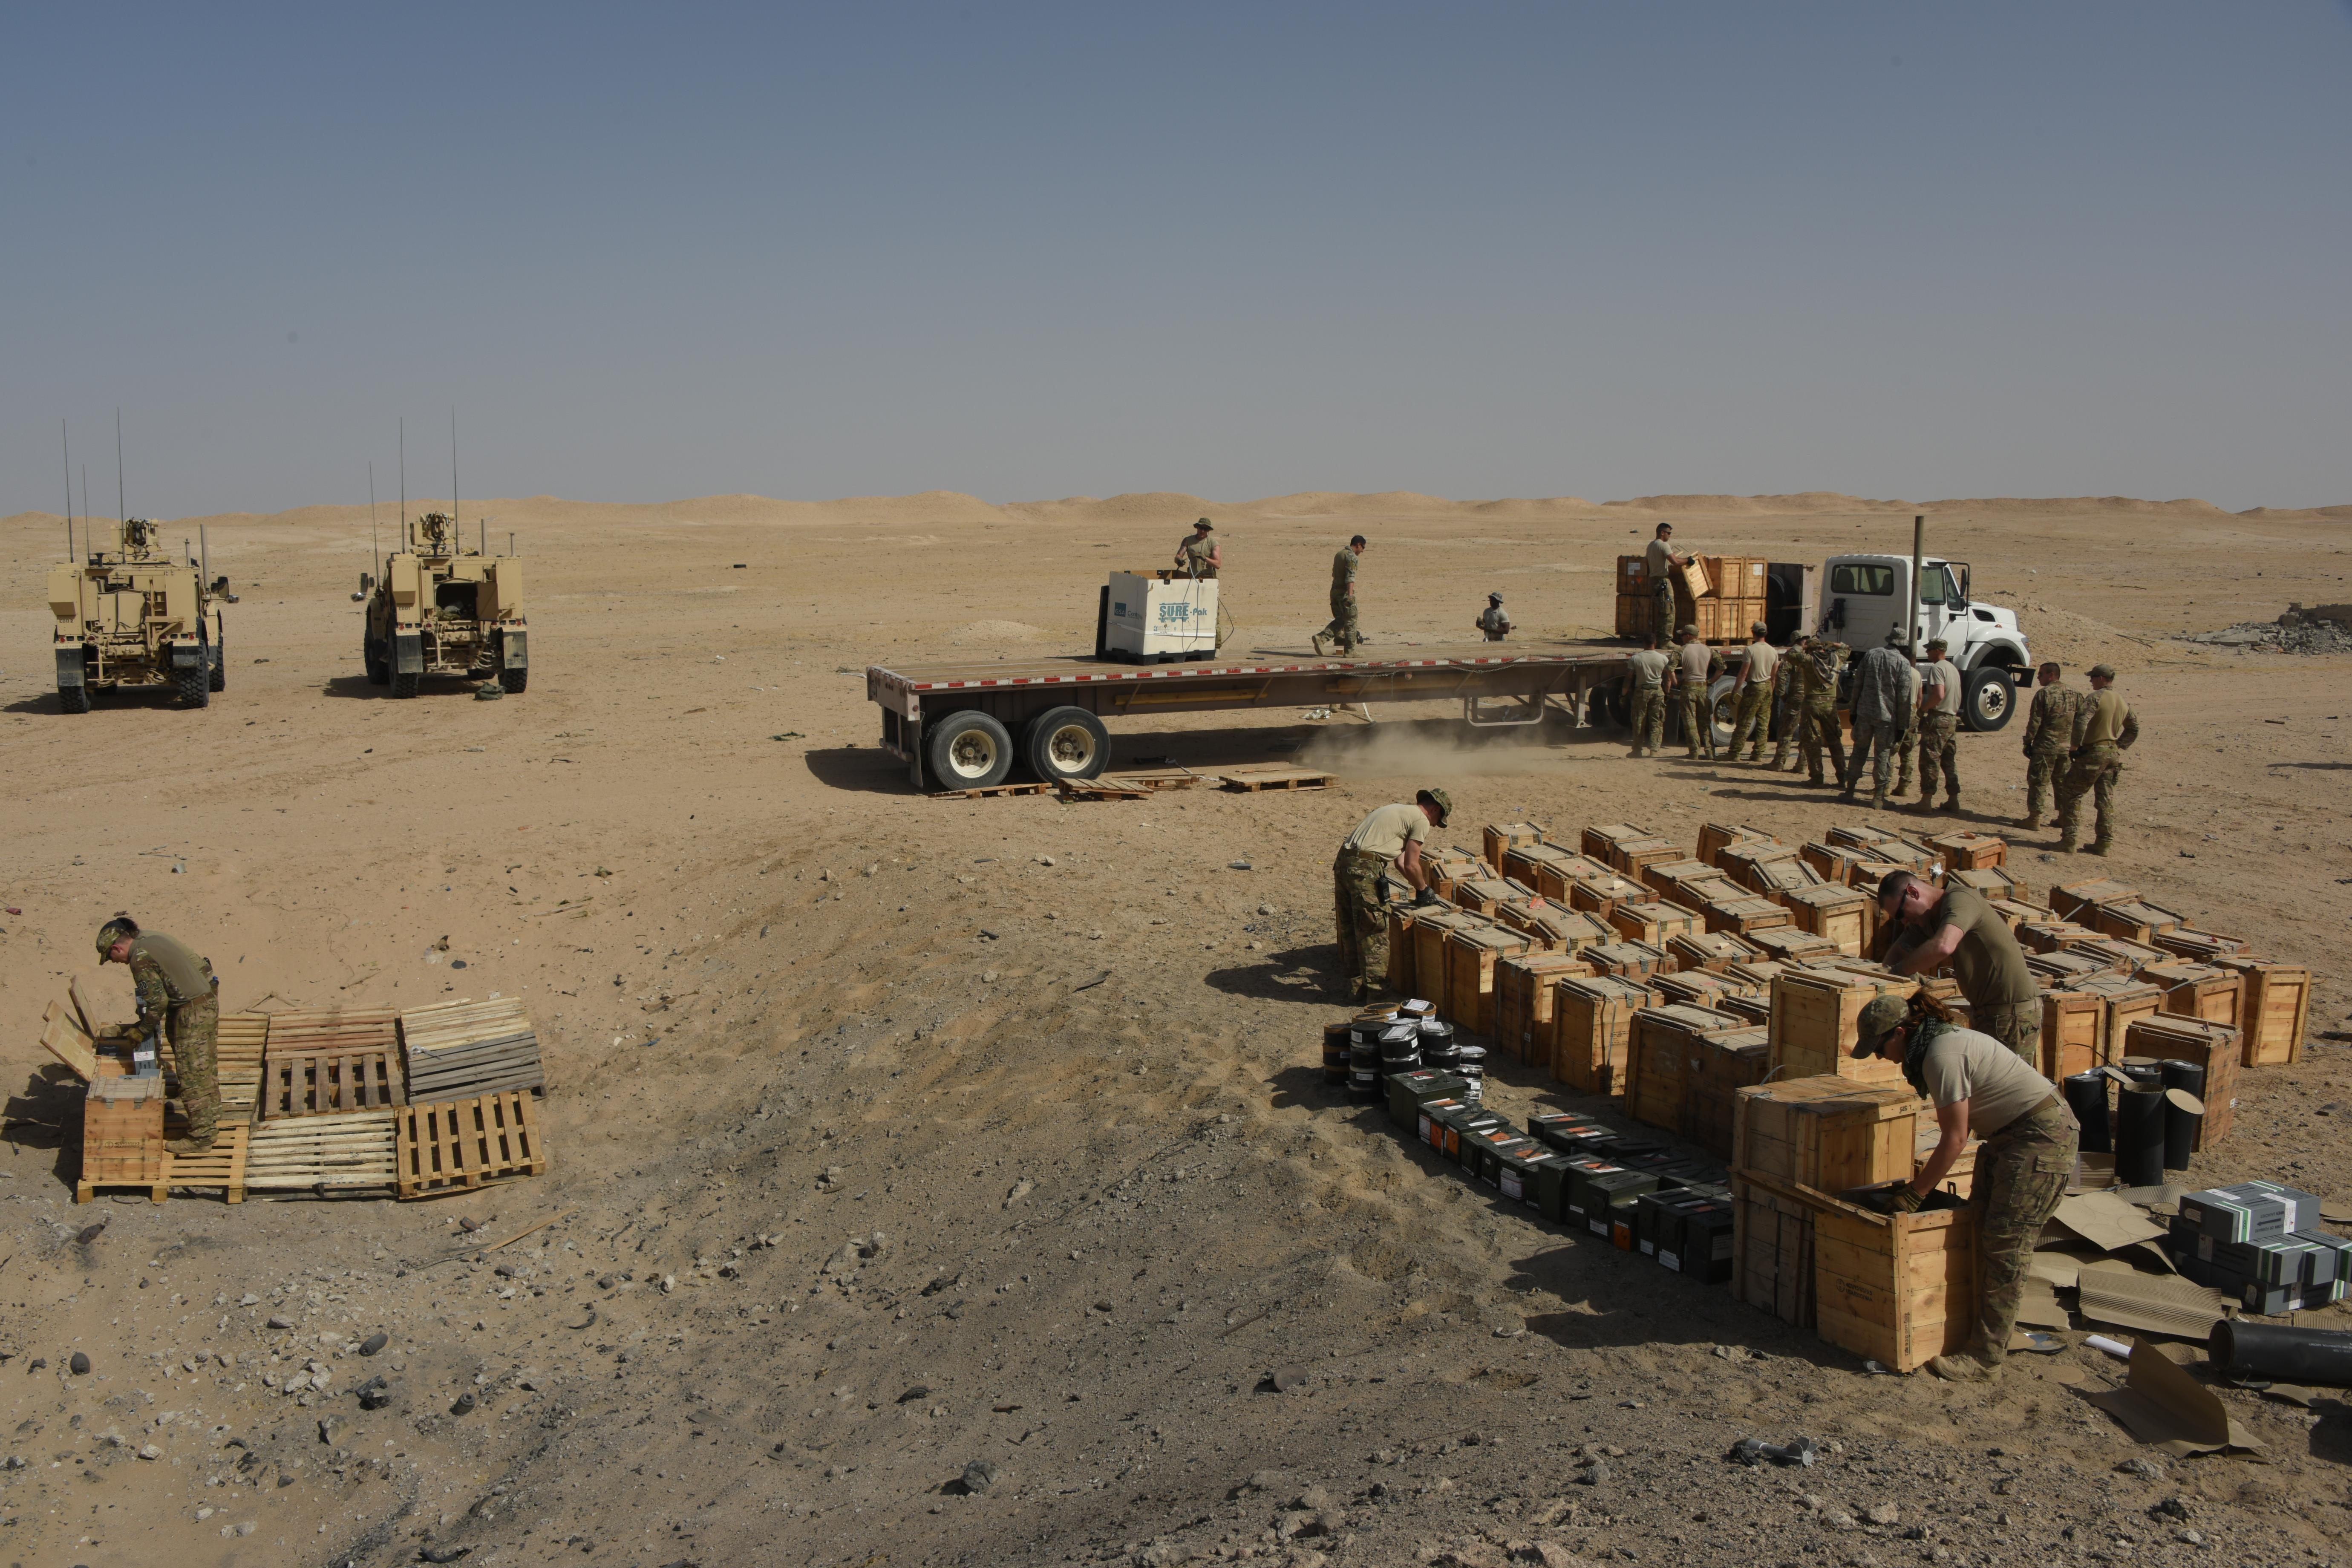 386 EOD support munition disposal need